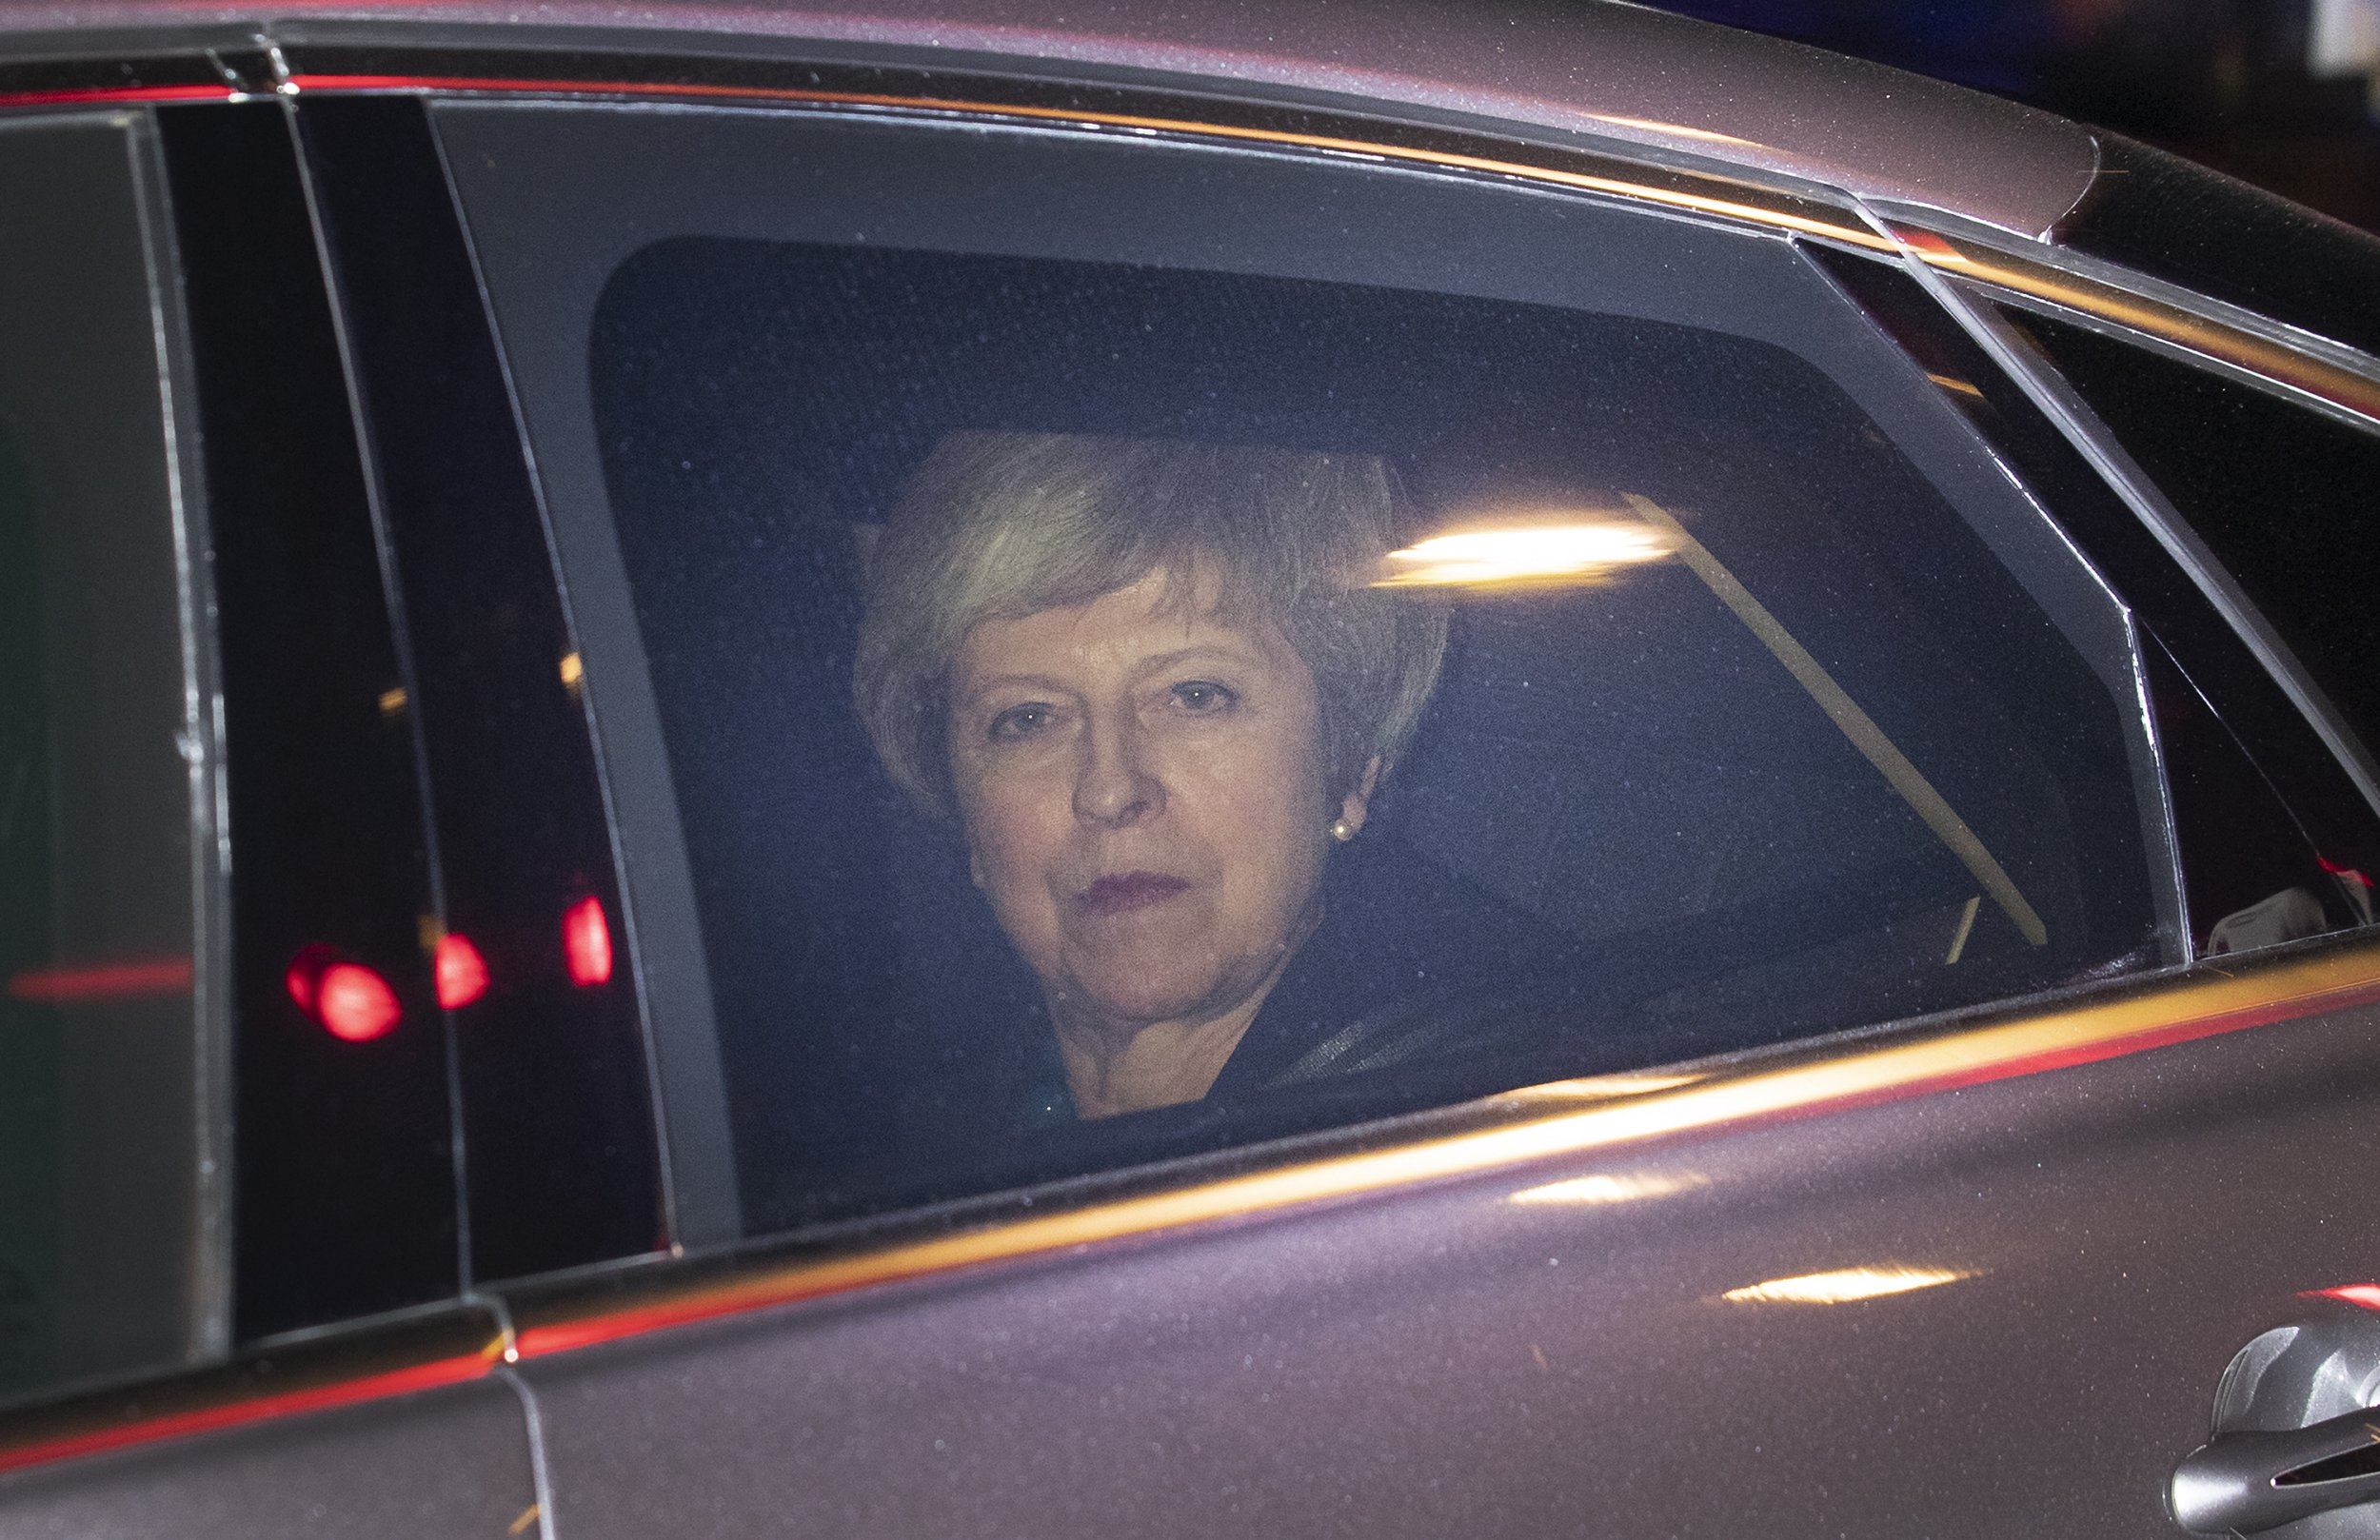 ? Licensed to London News Pictures. 10/12/2018. London, UK. Prime Minister Theresa May leaves Parliament after calling off tomorrow's withdrawal agreement vote in The House of Commons. Photo credit: Peter Macdiarmid/LNP